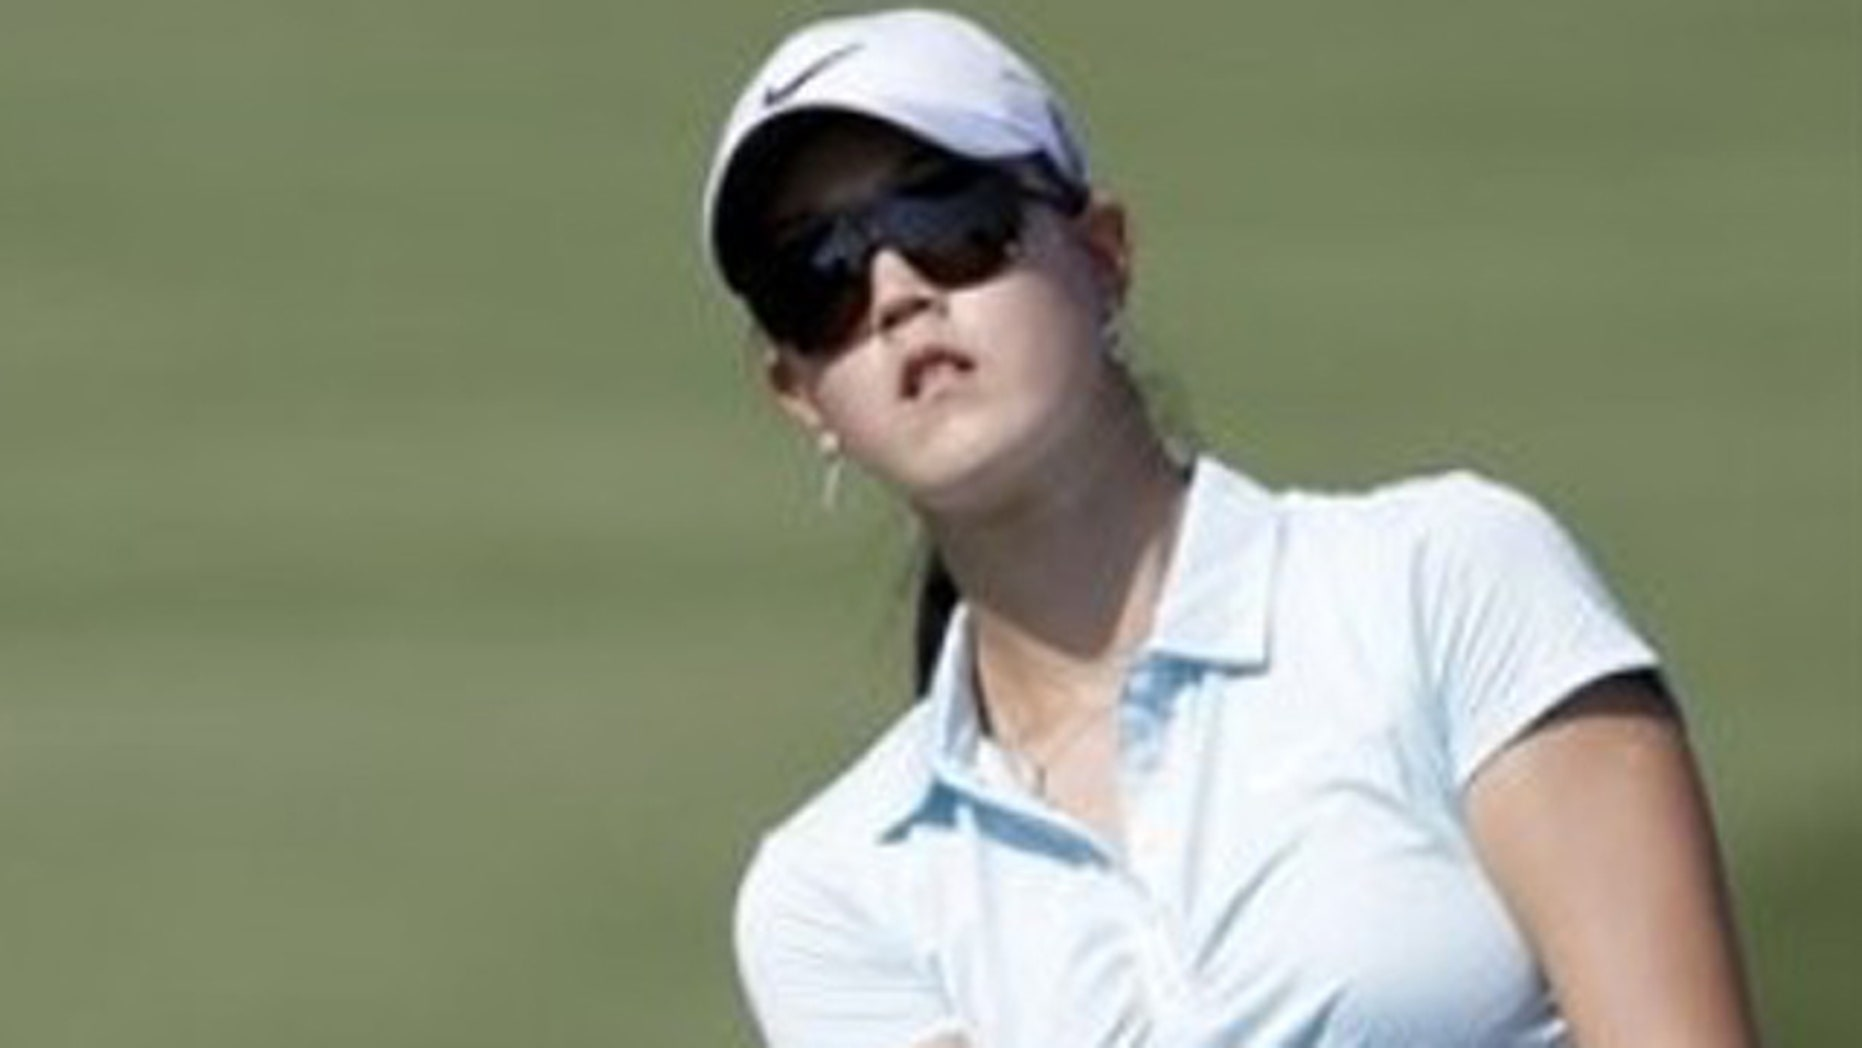 Michelle Wie follows her ball during the third round of the Omega Dubai Ladies Masters held at the Emirates Golf Club, Dubai, UAE, on Friday, Dec 10, 2010.